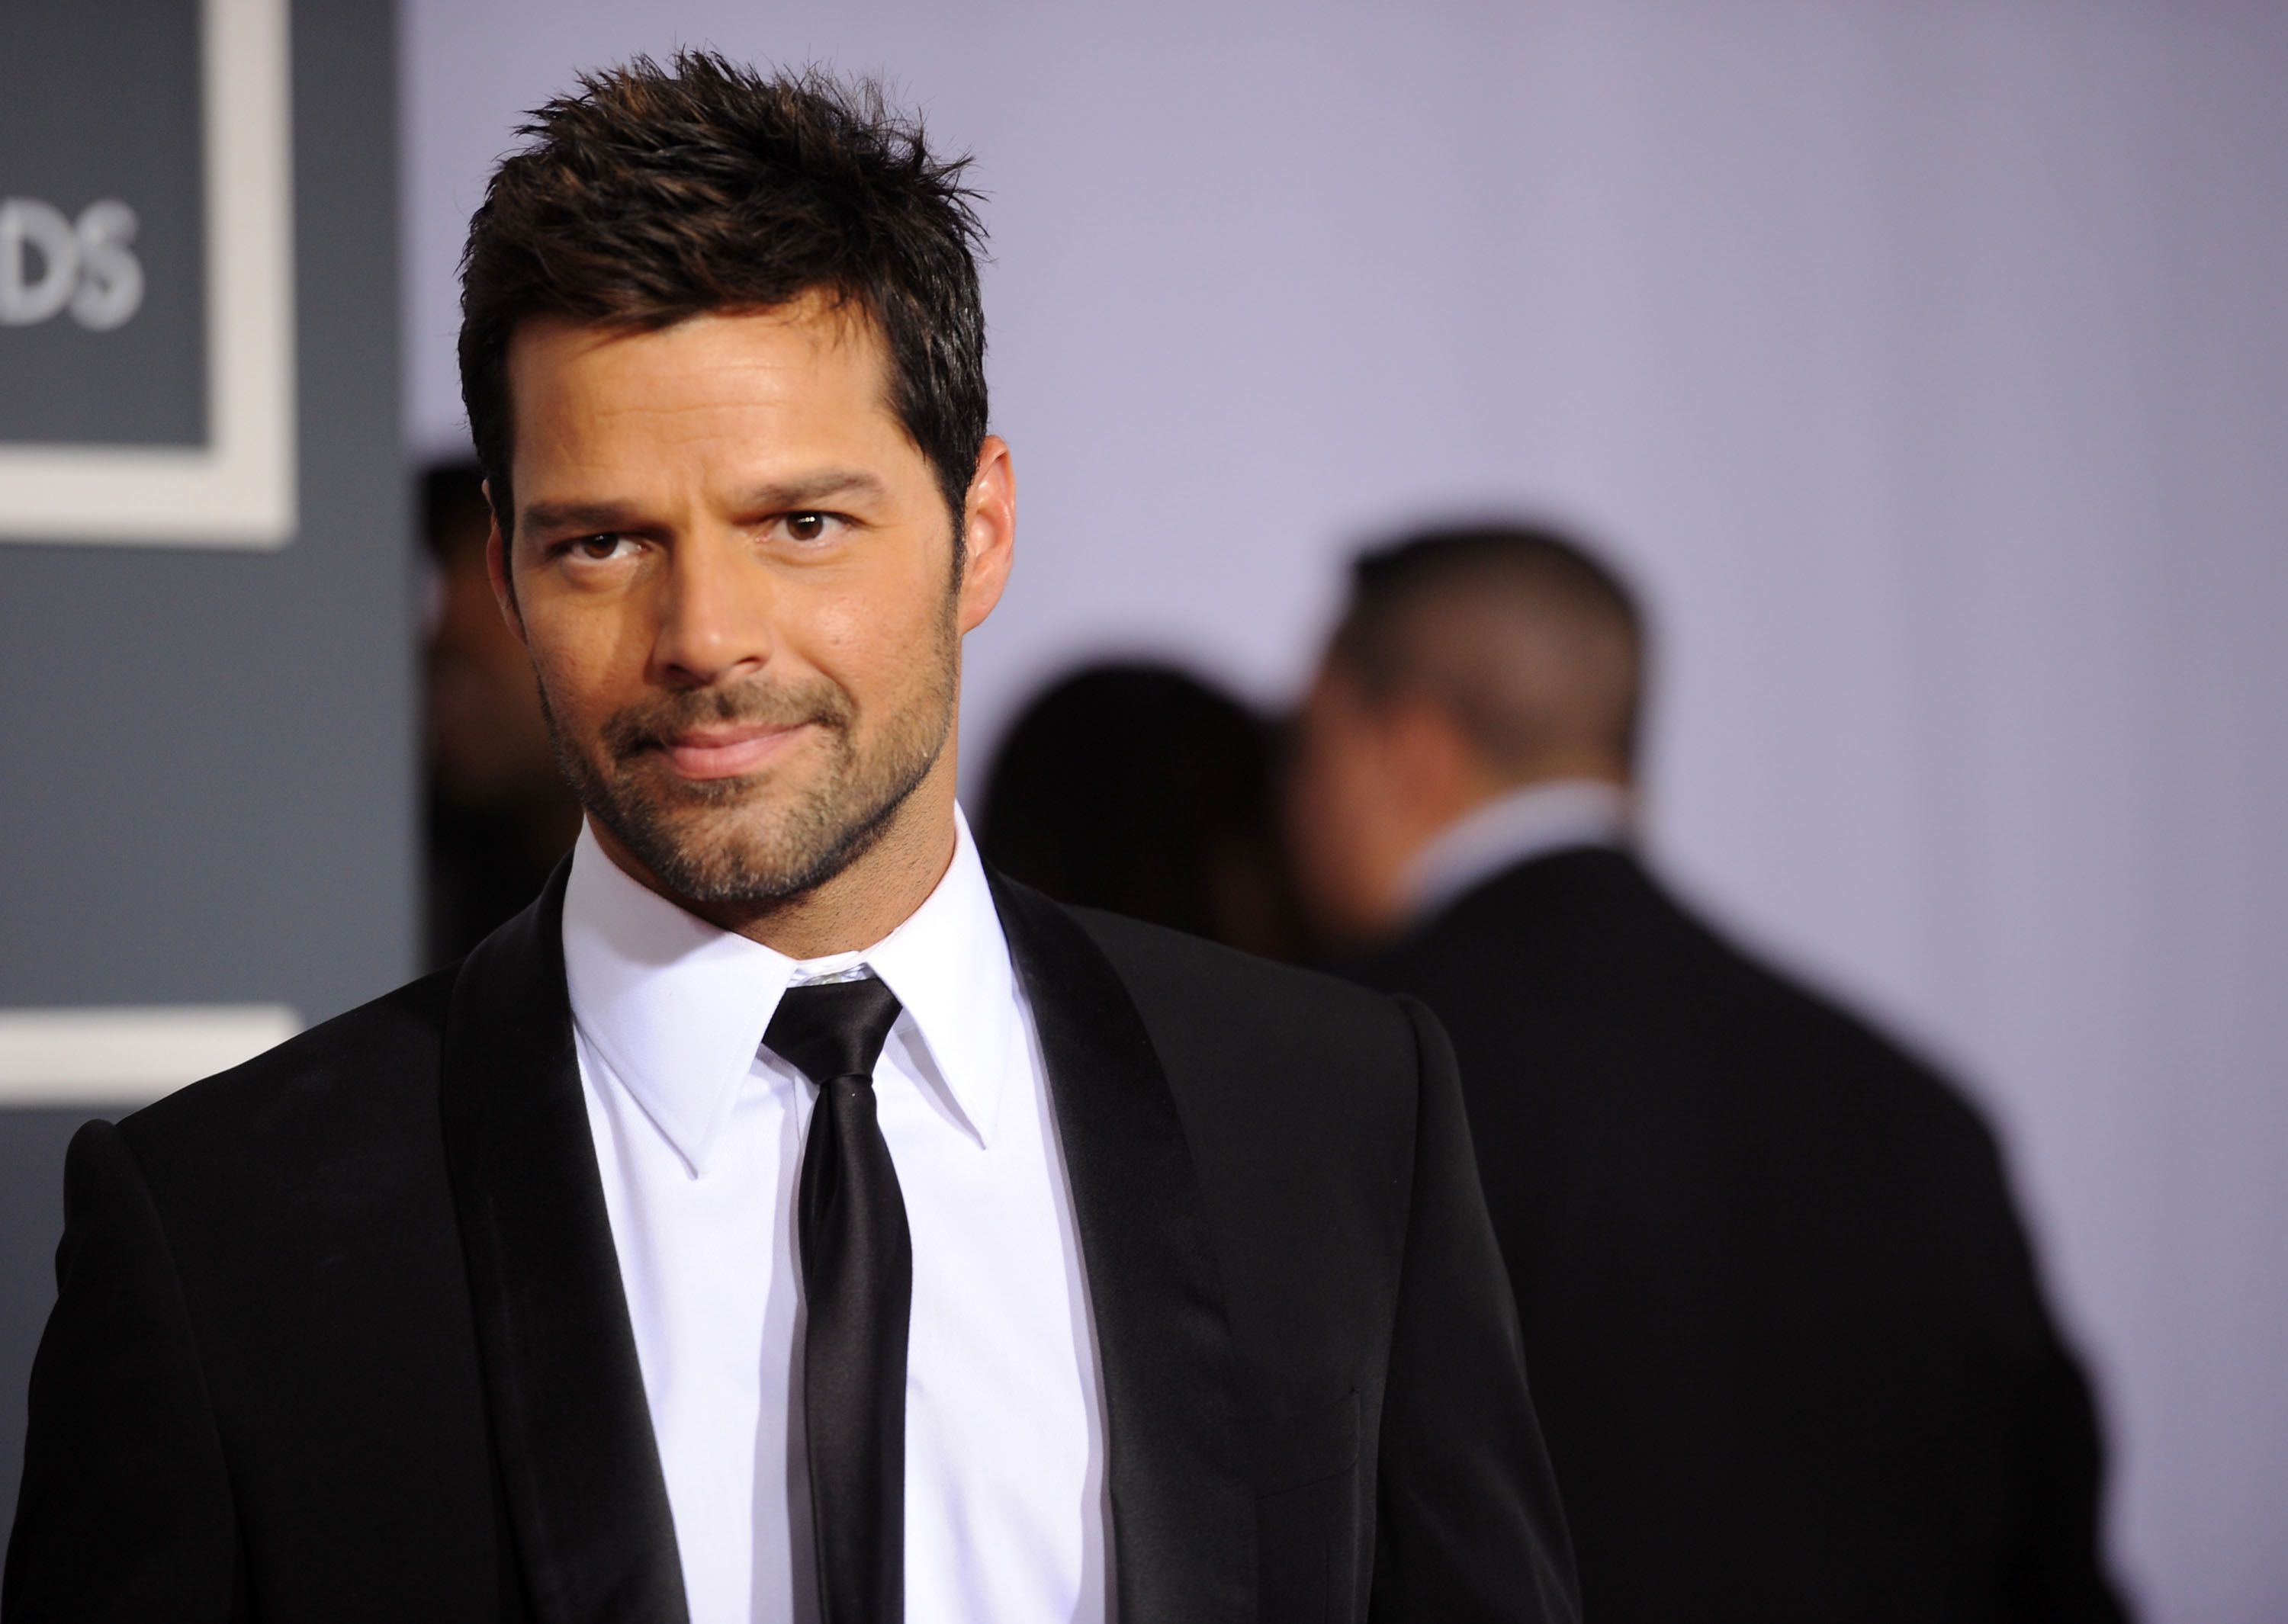 Ricky Martin will join the Versace: American Crime Story cast as designer's boyfriend